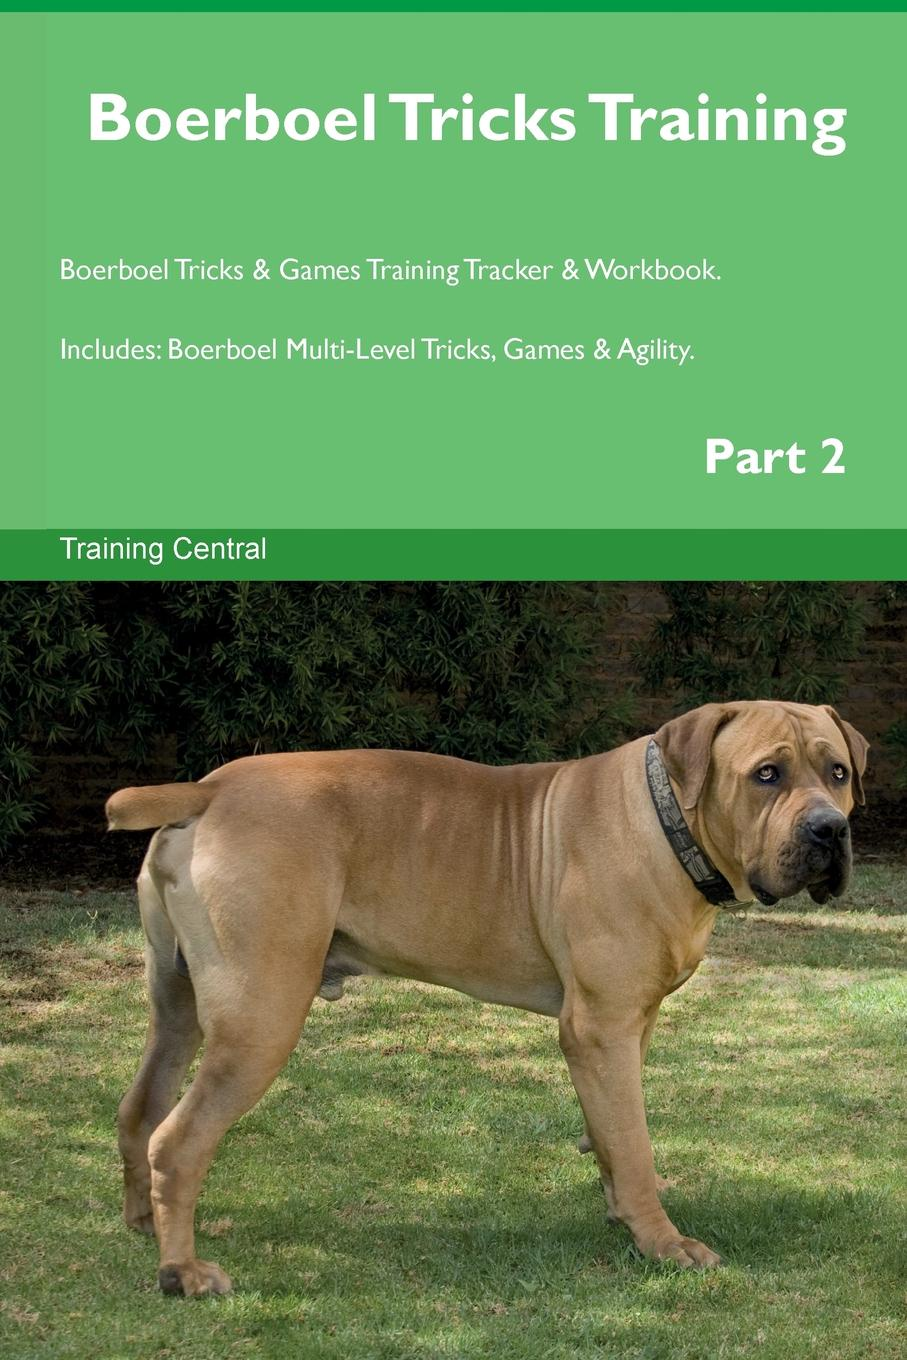 Фото - Training Central Boerboel Tricks Training Boerboel Tricks & Games Training Tracker & Workbook. Includes. Boerboel Multi-Level Tricks, Games & Agility. Part 2 harry holstone boerboel the boerboel dog owner s manual boerboel dog care personality grooming health costs and feeding all included